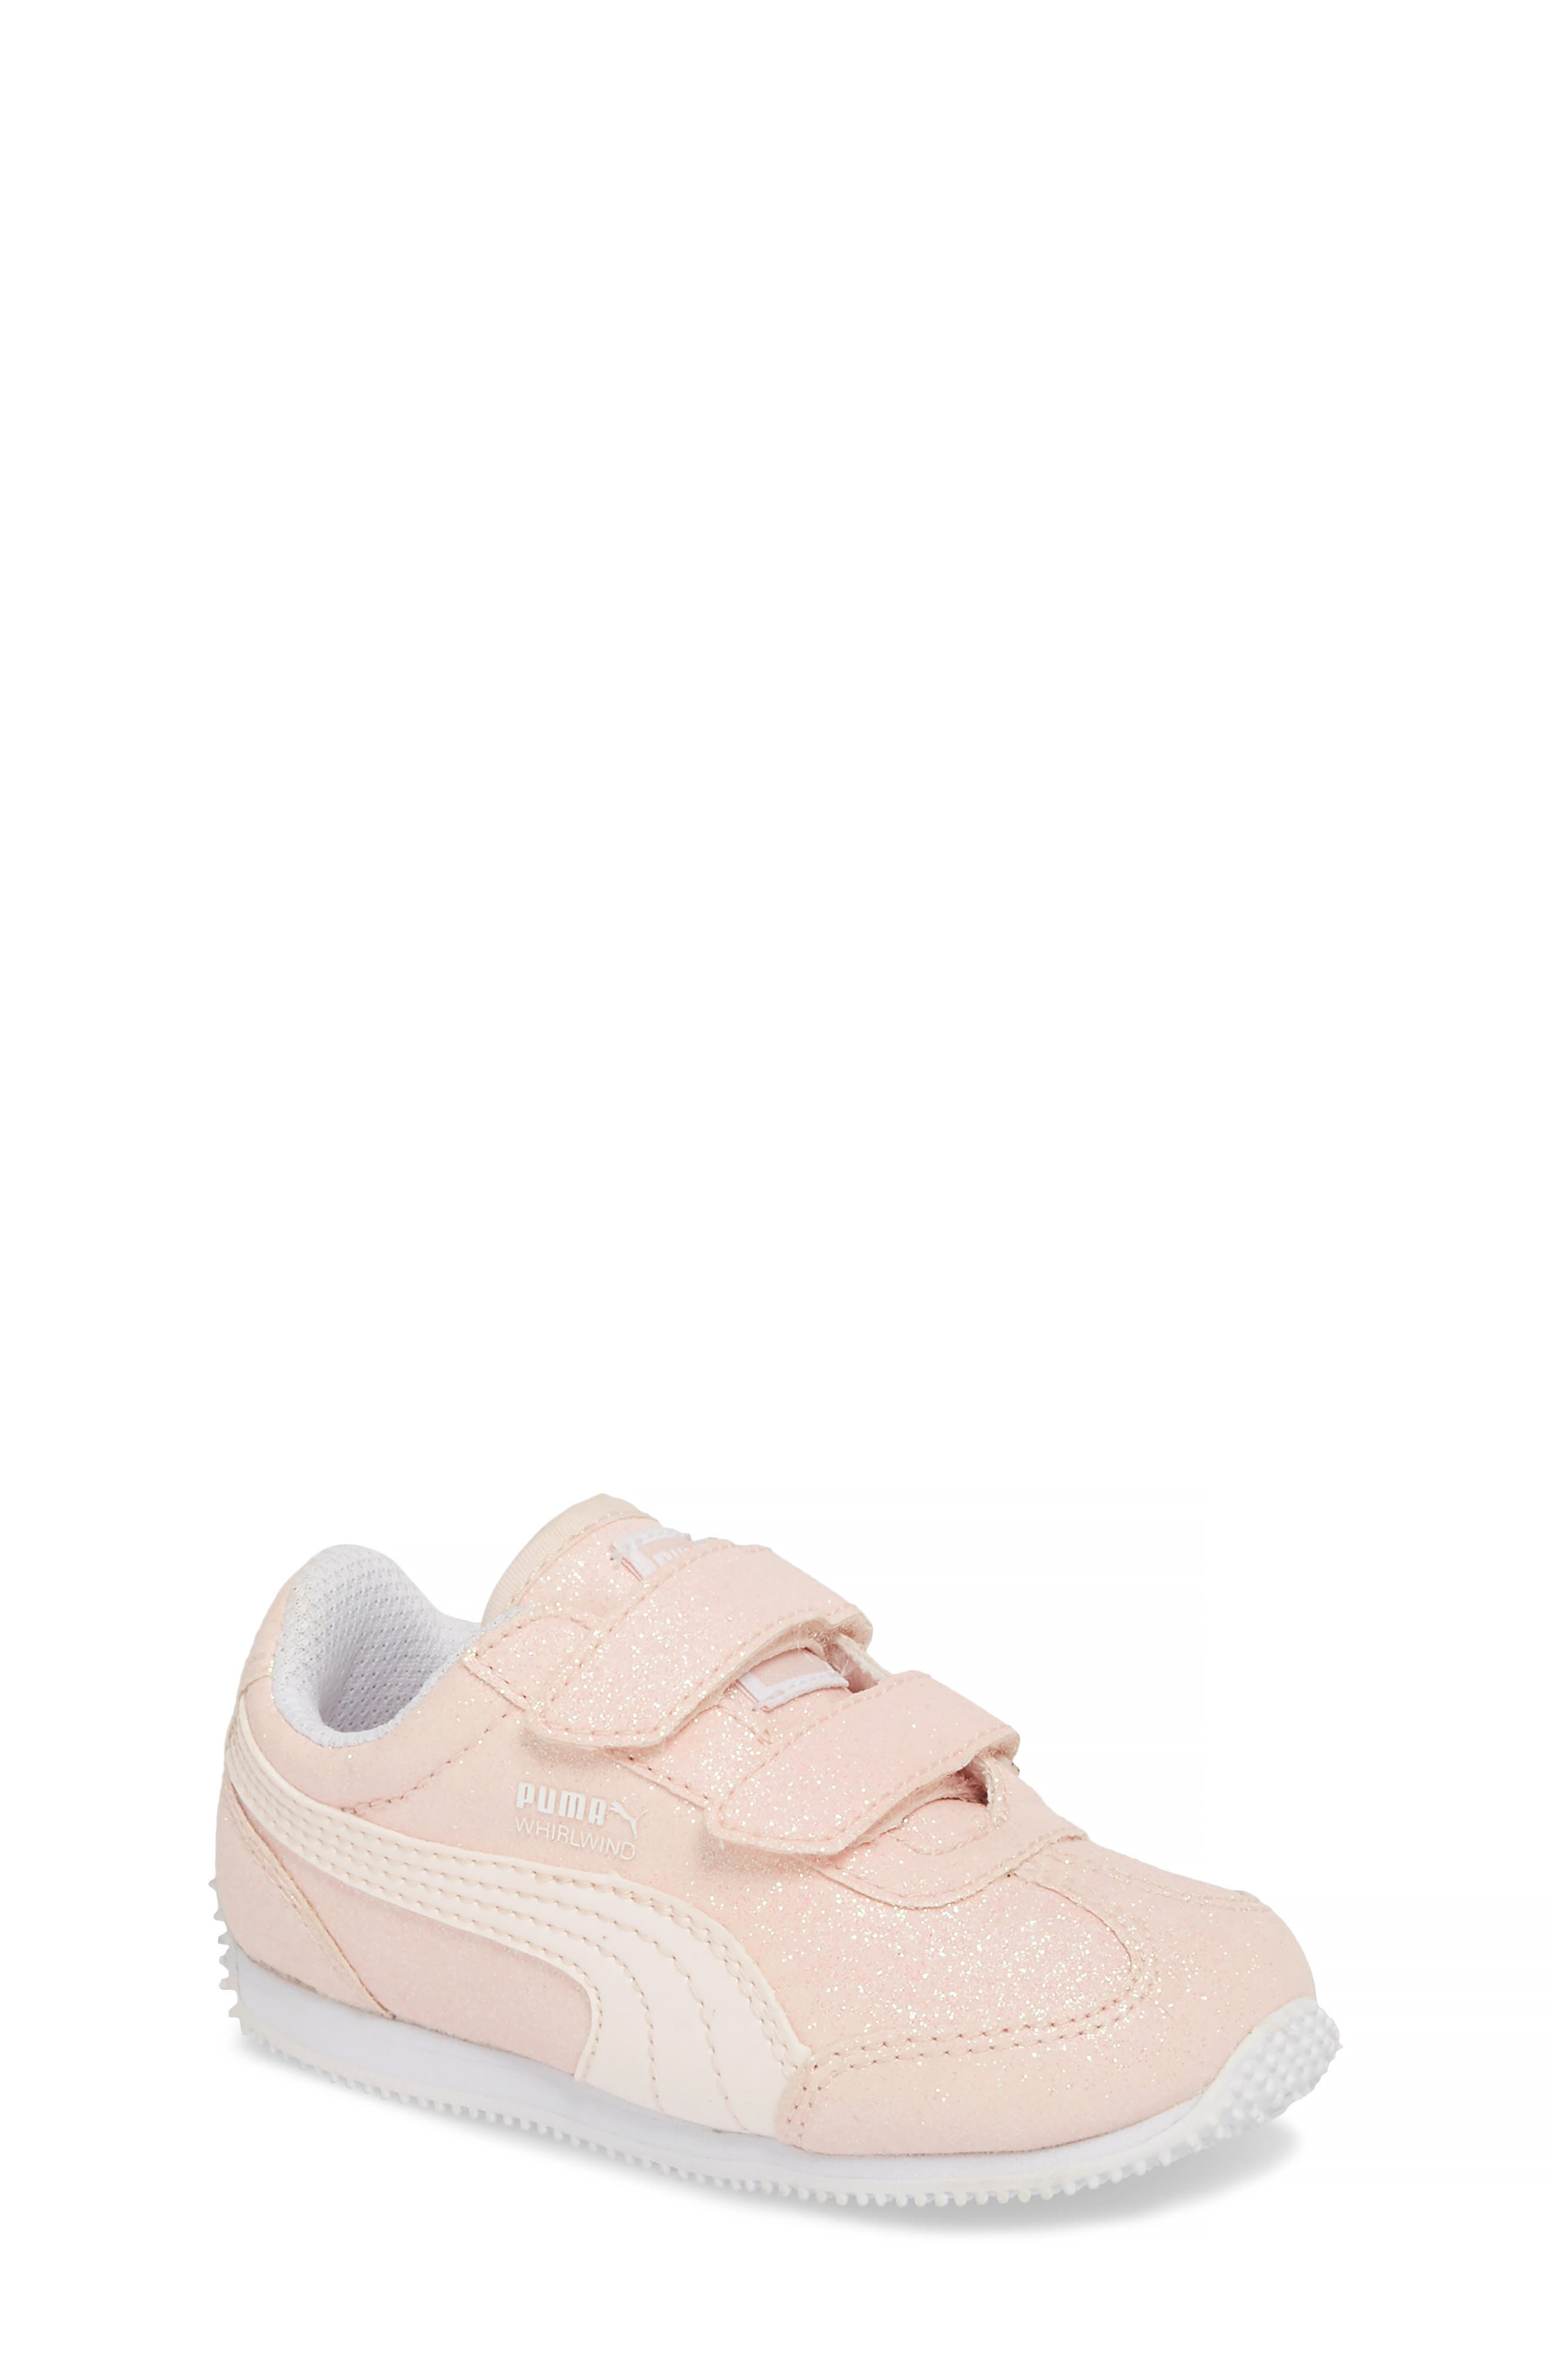 Whirlwind Glitz Sneaker,                             Main thumbnail 1, color,                             PEARL/ PUMA WHITE